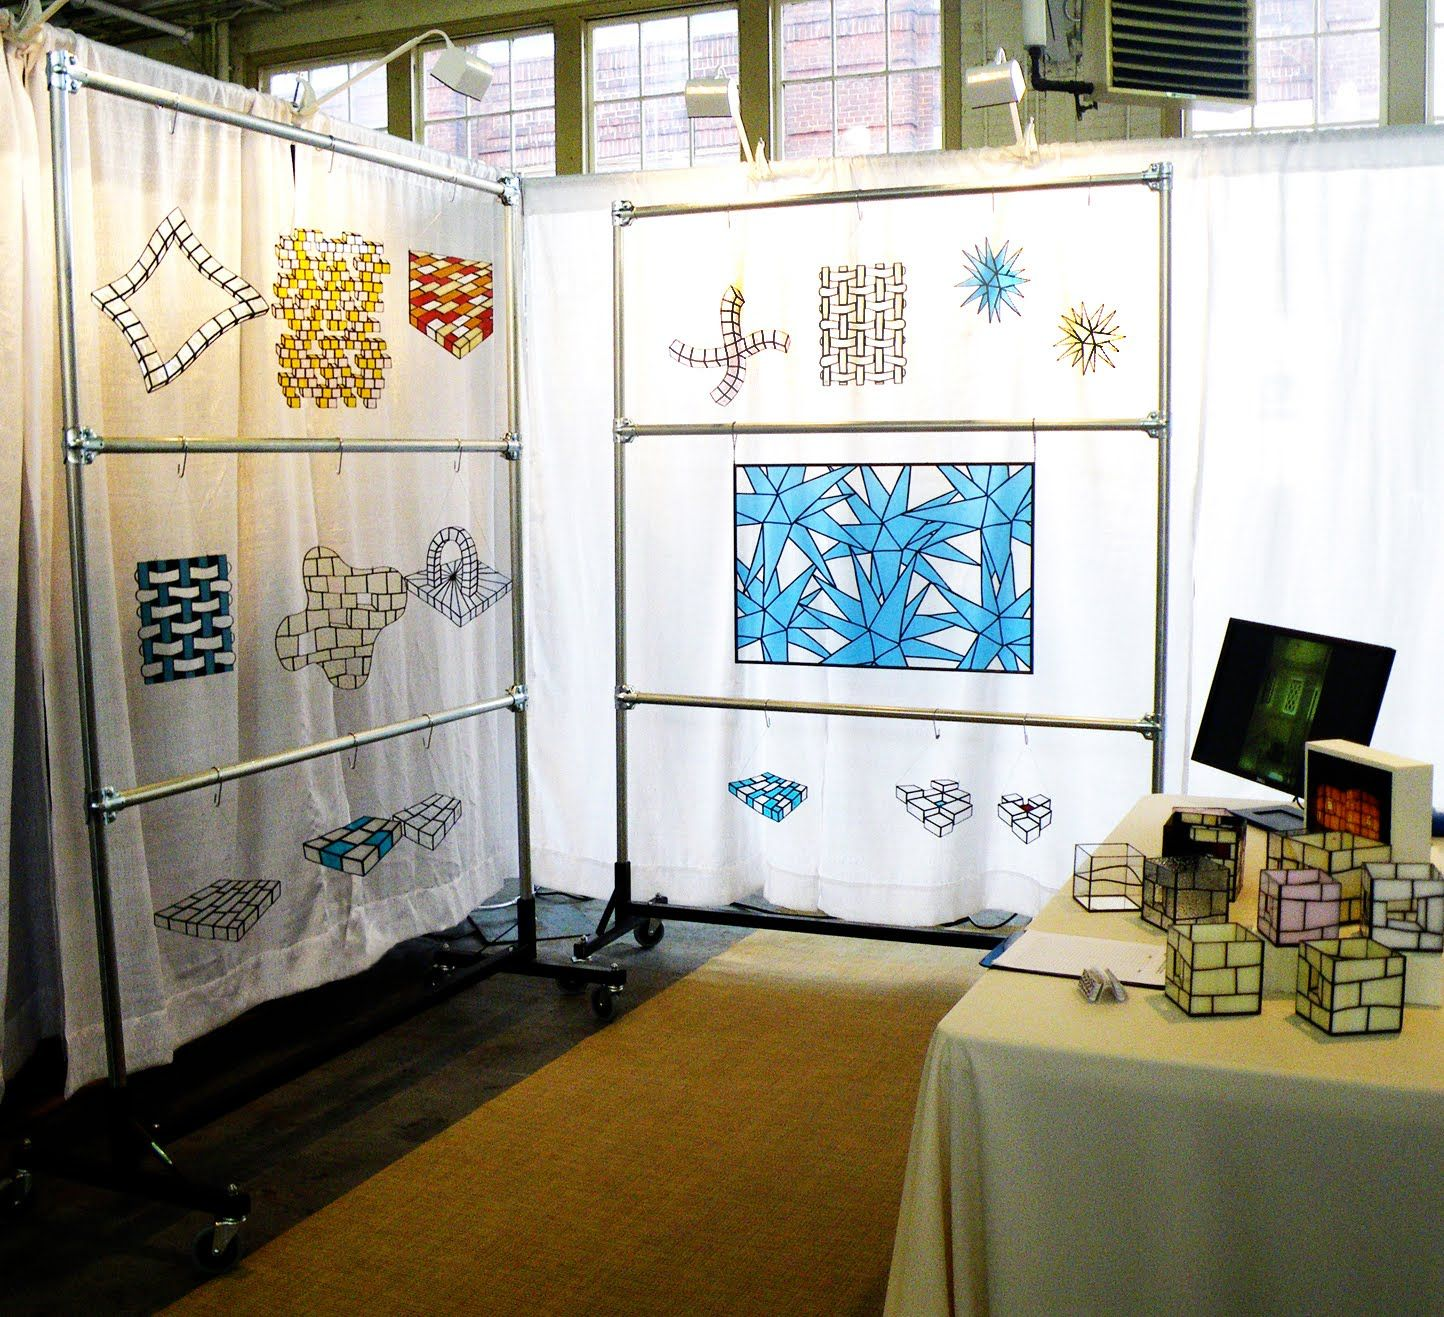 Inspiration Art Show & Display Ideas Stained Glass